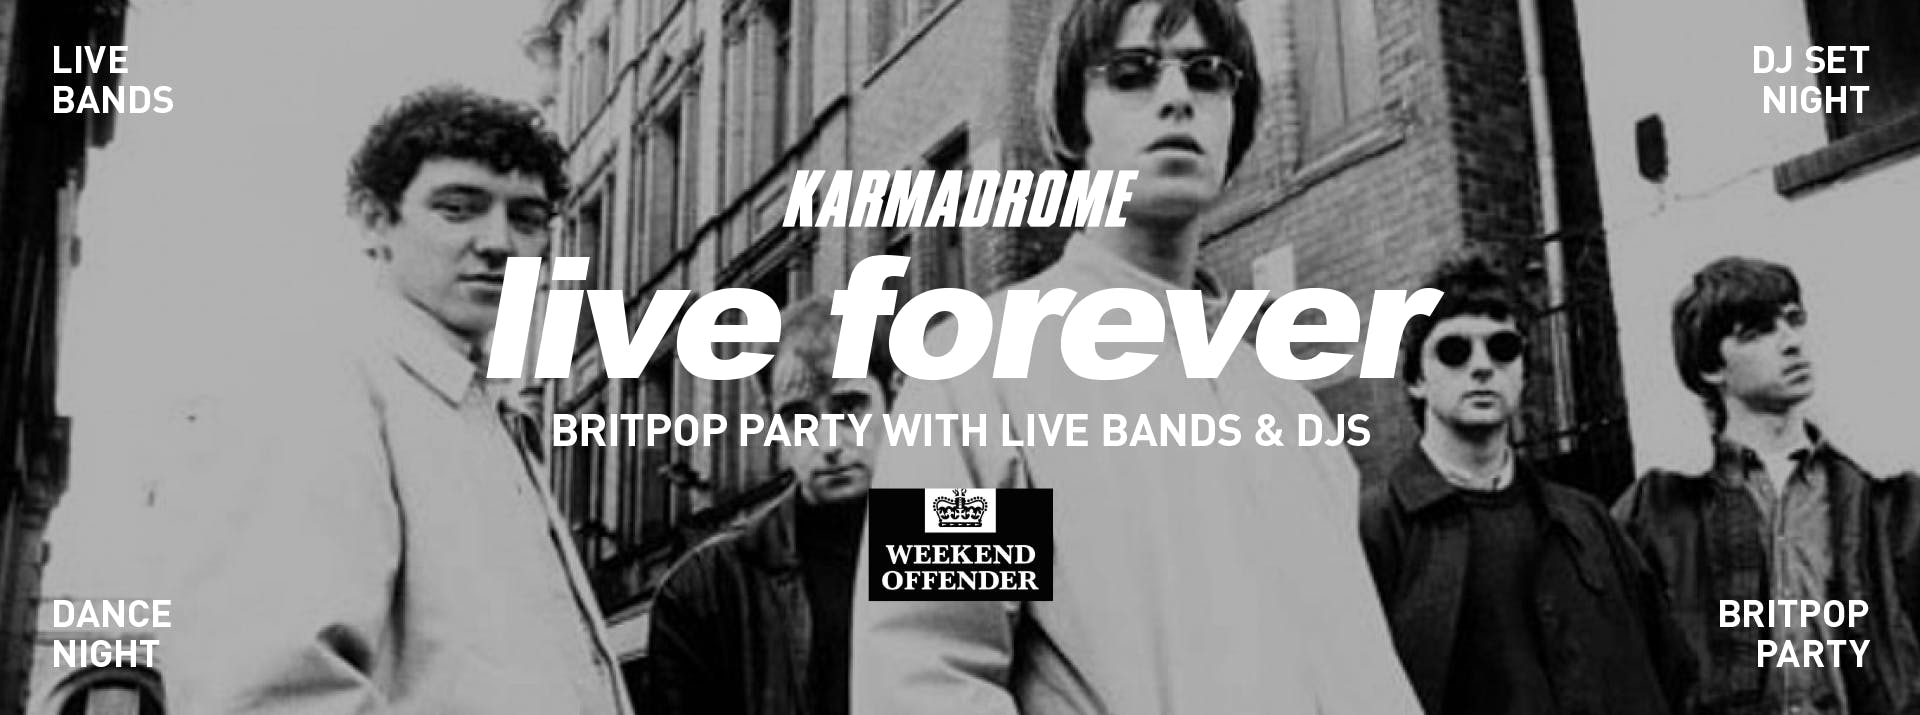 Karmadrome: Britpop Party - Oasis Tribute ban